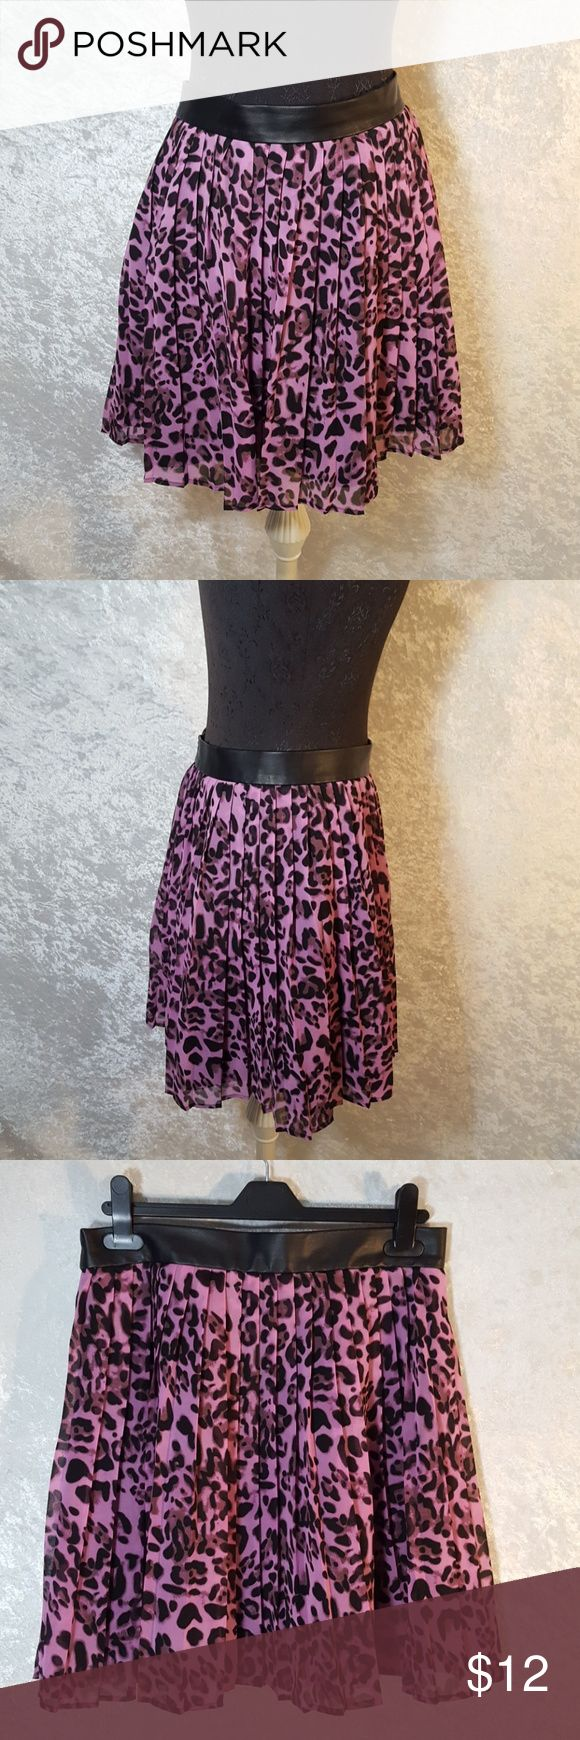 Purple safari cat skirt Size large by Forever 21.  100% polyester pleated skirt. Purple and black cheetah leopard safari cat print.  Waistband is pleather like over the skirt with black liner that is more silk like.  Great for date night, girls night out, or even a goth look.  Used condition not brand new. Has small puncture hole on back of waistline from price tag. Feel free to ask questions or request more photos. I do bundle discounts and accept offers.  Thanks for looking and happy…